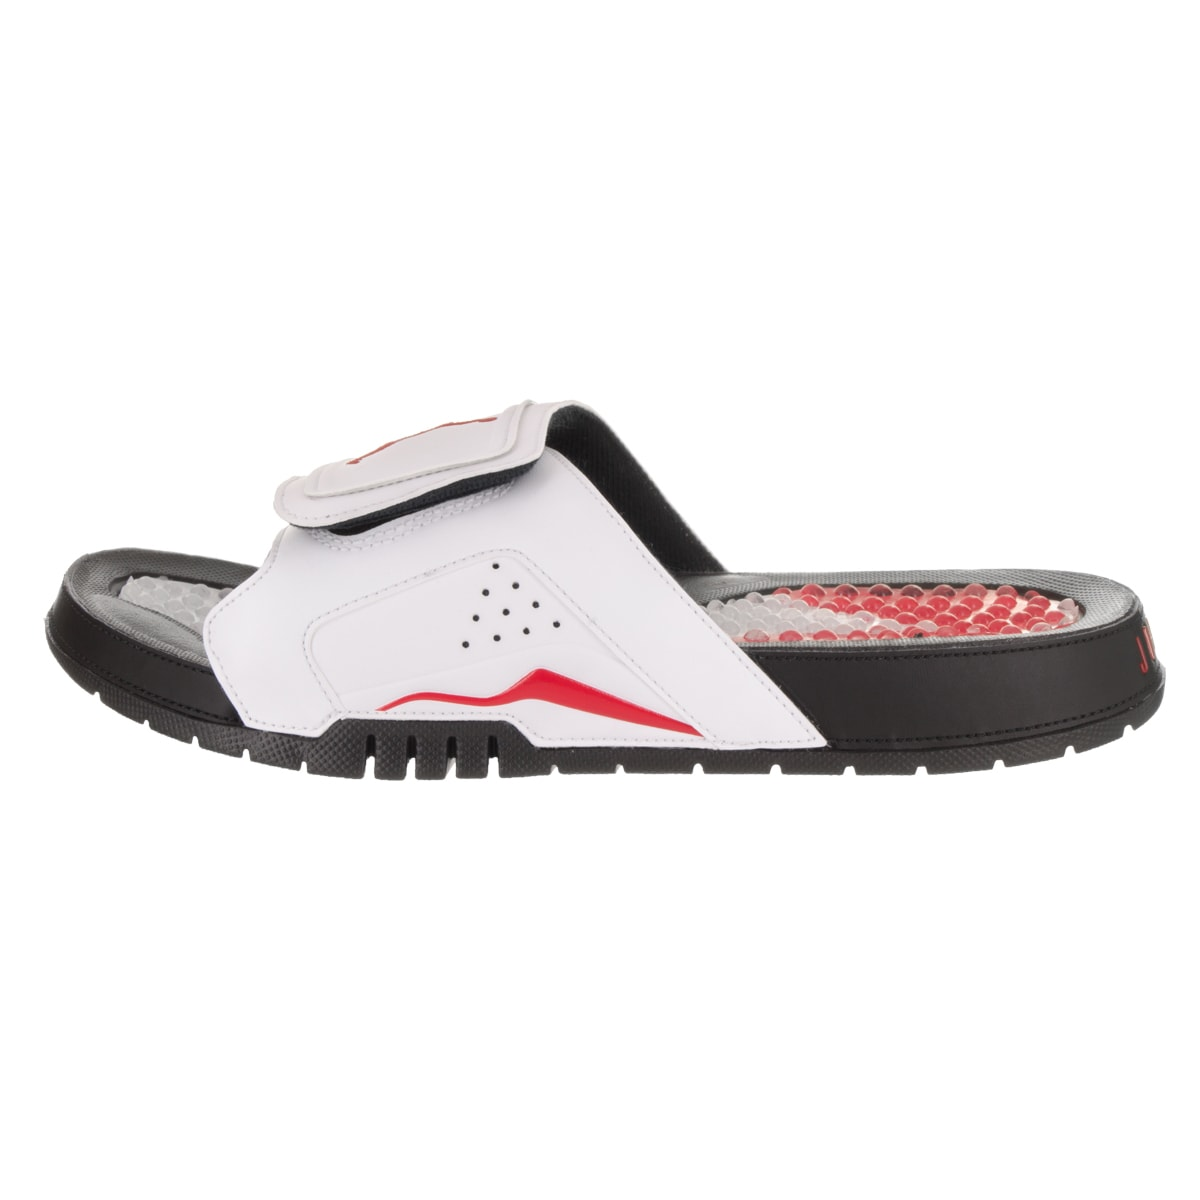 Nike Mens Hydro 6 Synthetic Leather Sandals